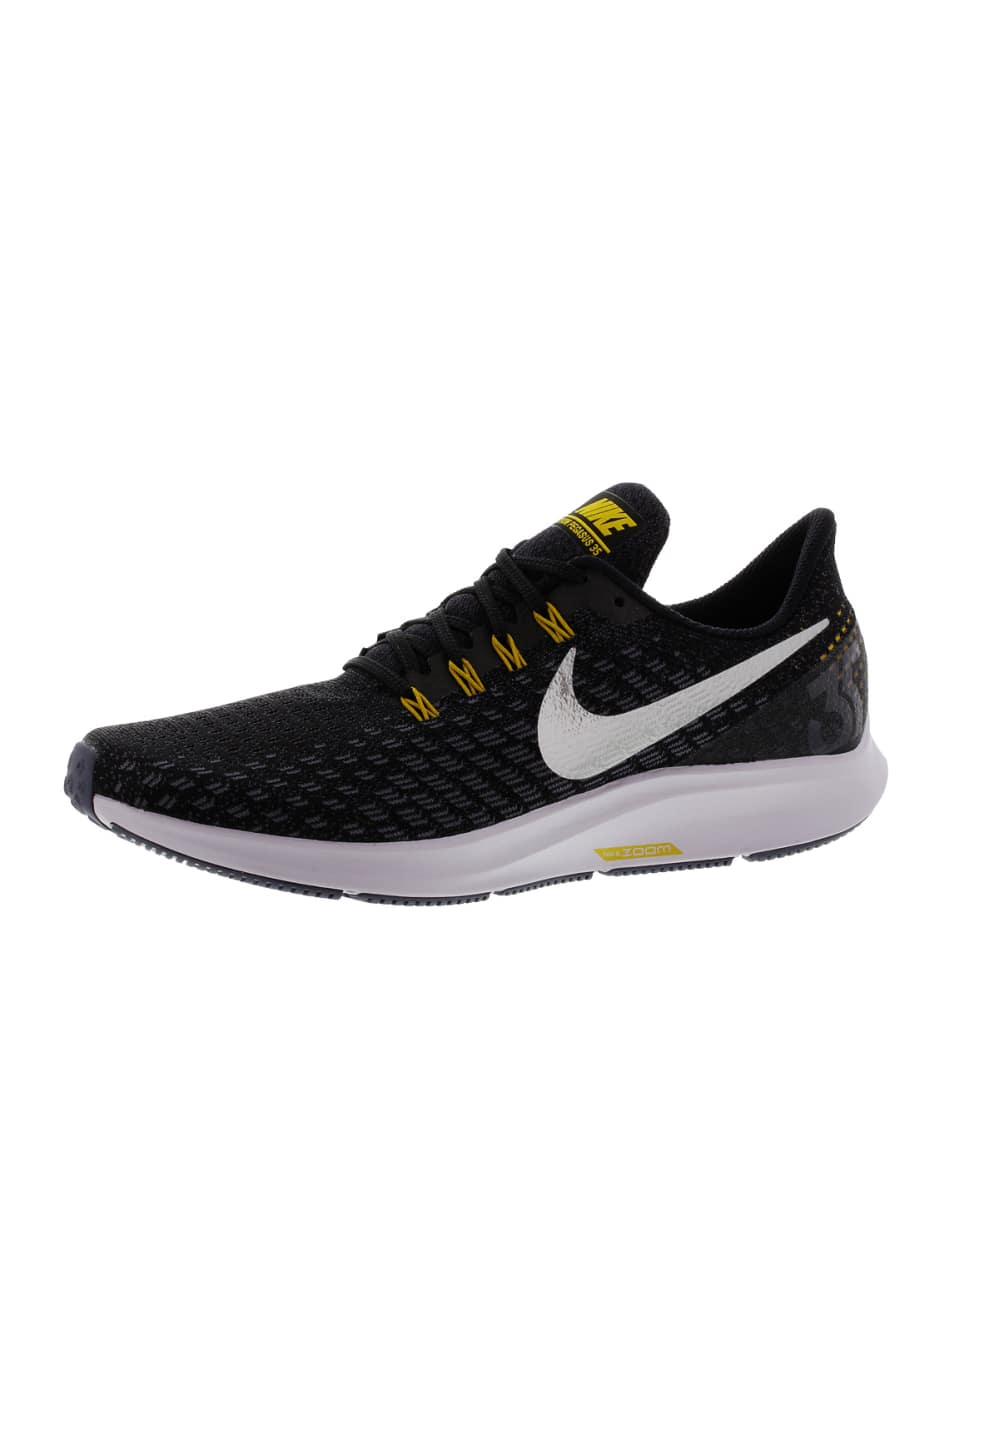 finest selection 5c6e1 a8ed2 Nike Air Zoom Pegasus 35 - Running shoes for Men - Black